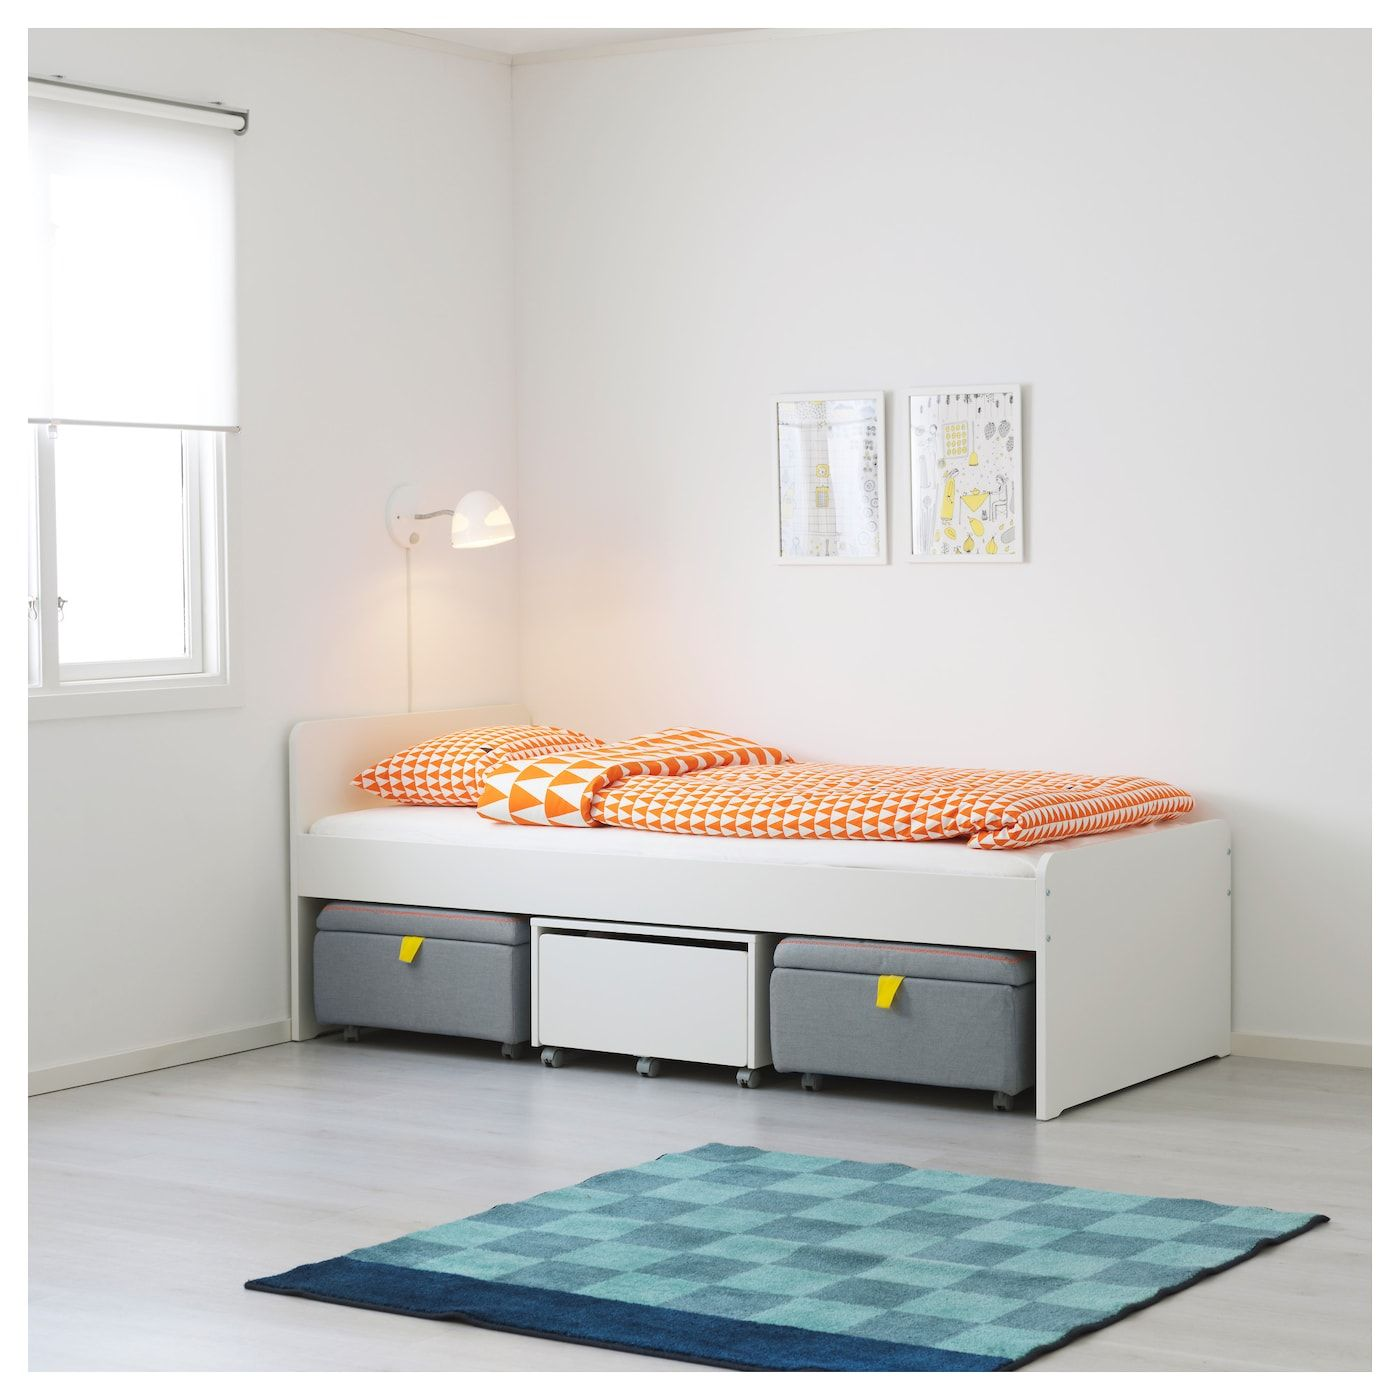 Slakt Bed Frame With Storage Seating White Gray Ikea Bed